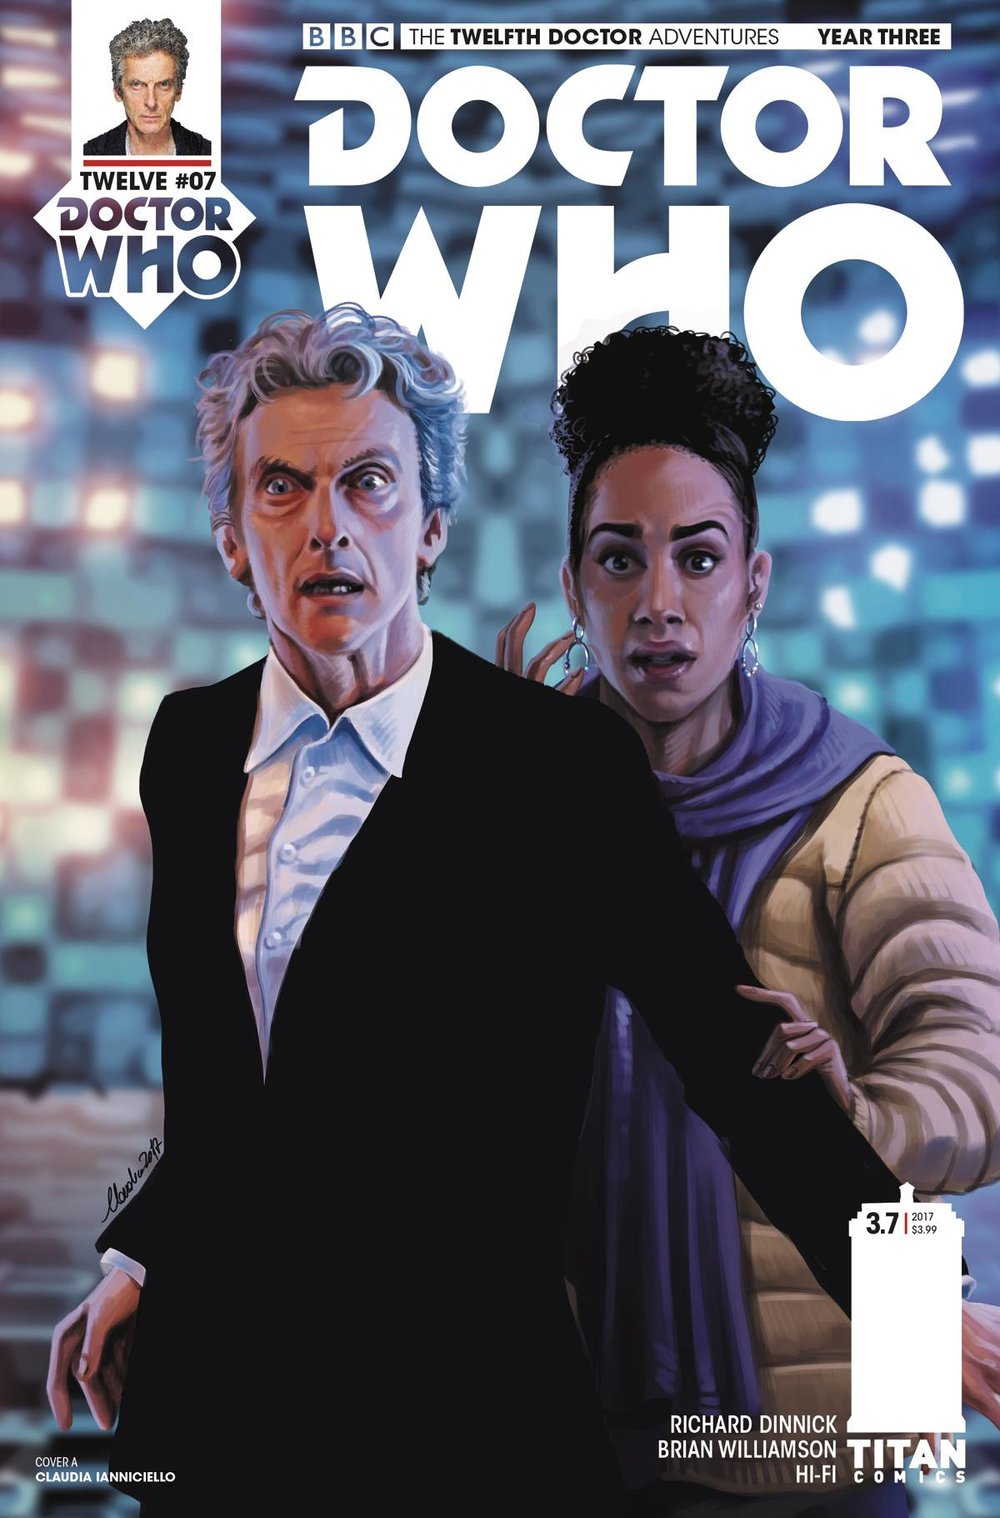 DOCTOR WHO 12TH YEAR THREE 7 CVR A IANNICIELLO.jpg